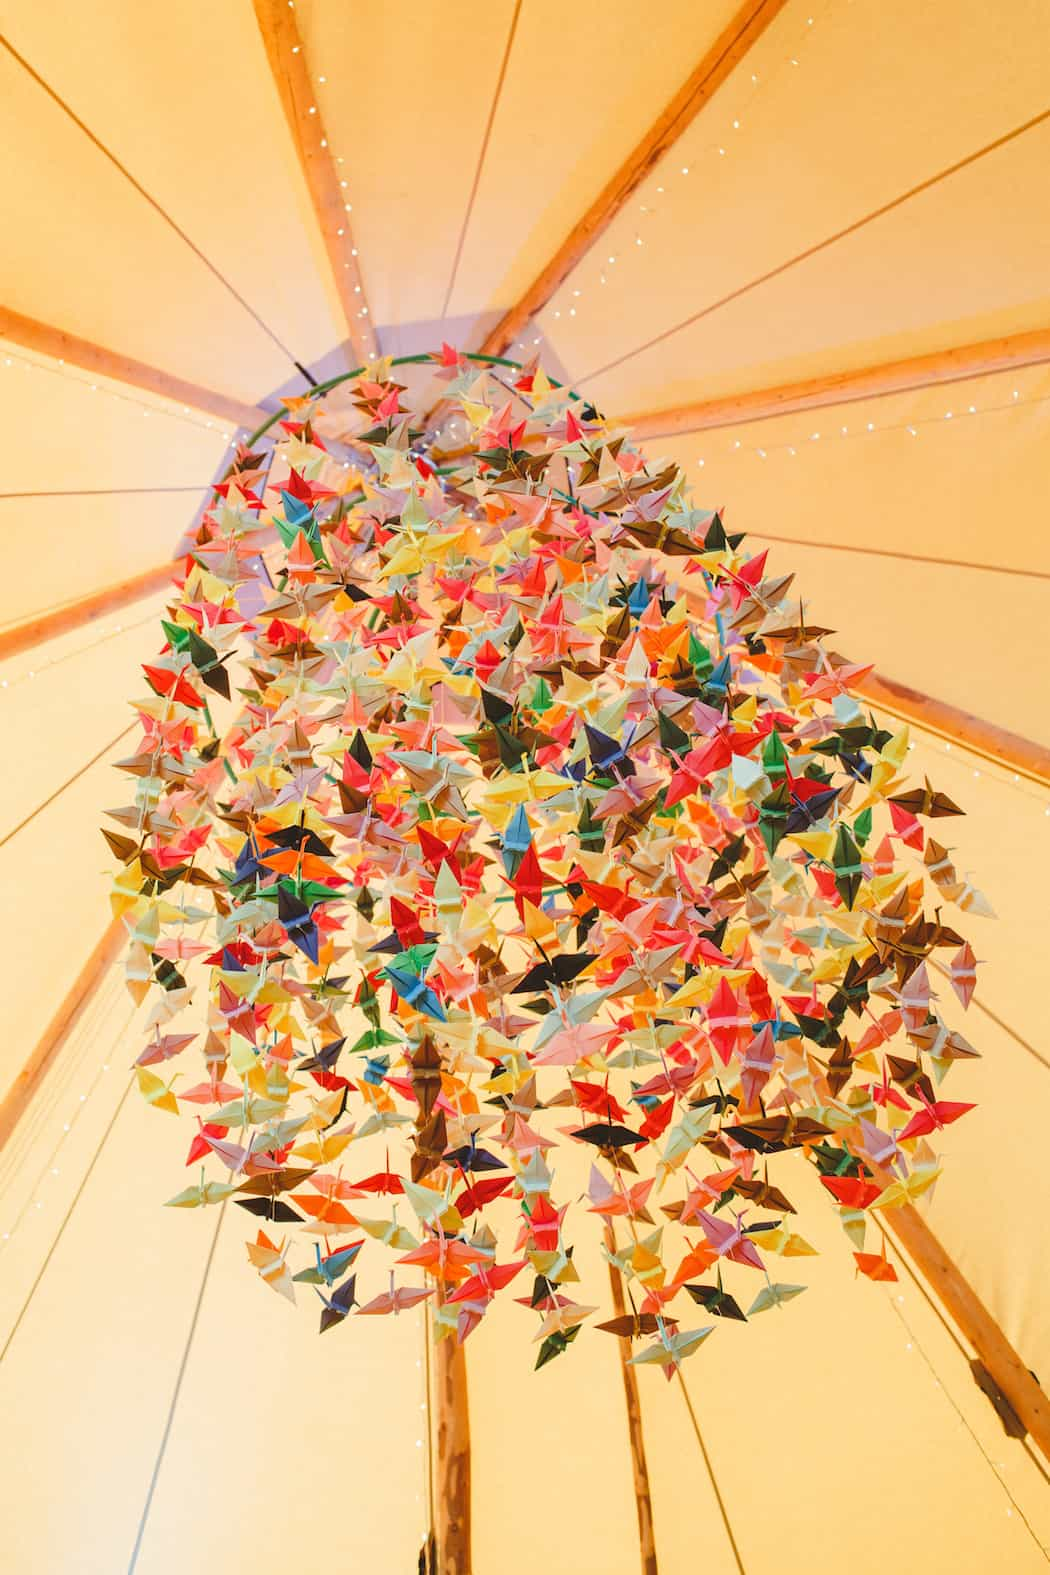 1000 Origami paper cranes hanging in tipi